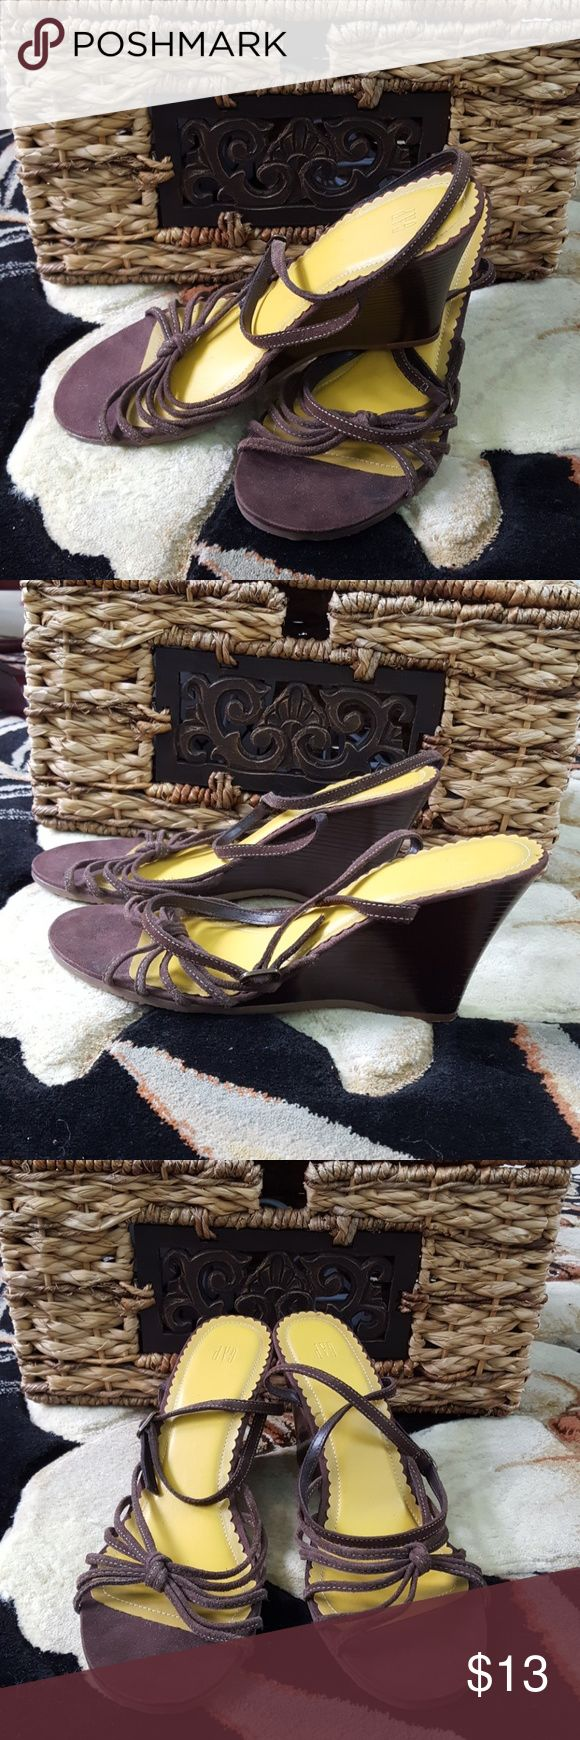 Gap Strappy Wedge Sandals Brown strappy sandal wedges Good pre loved condition Appx 3.5 inch heel Add to a min $40. bundle and...... You can have these for FREE! GAP Shoes